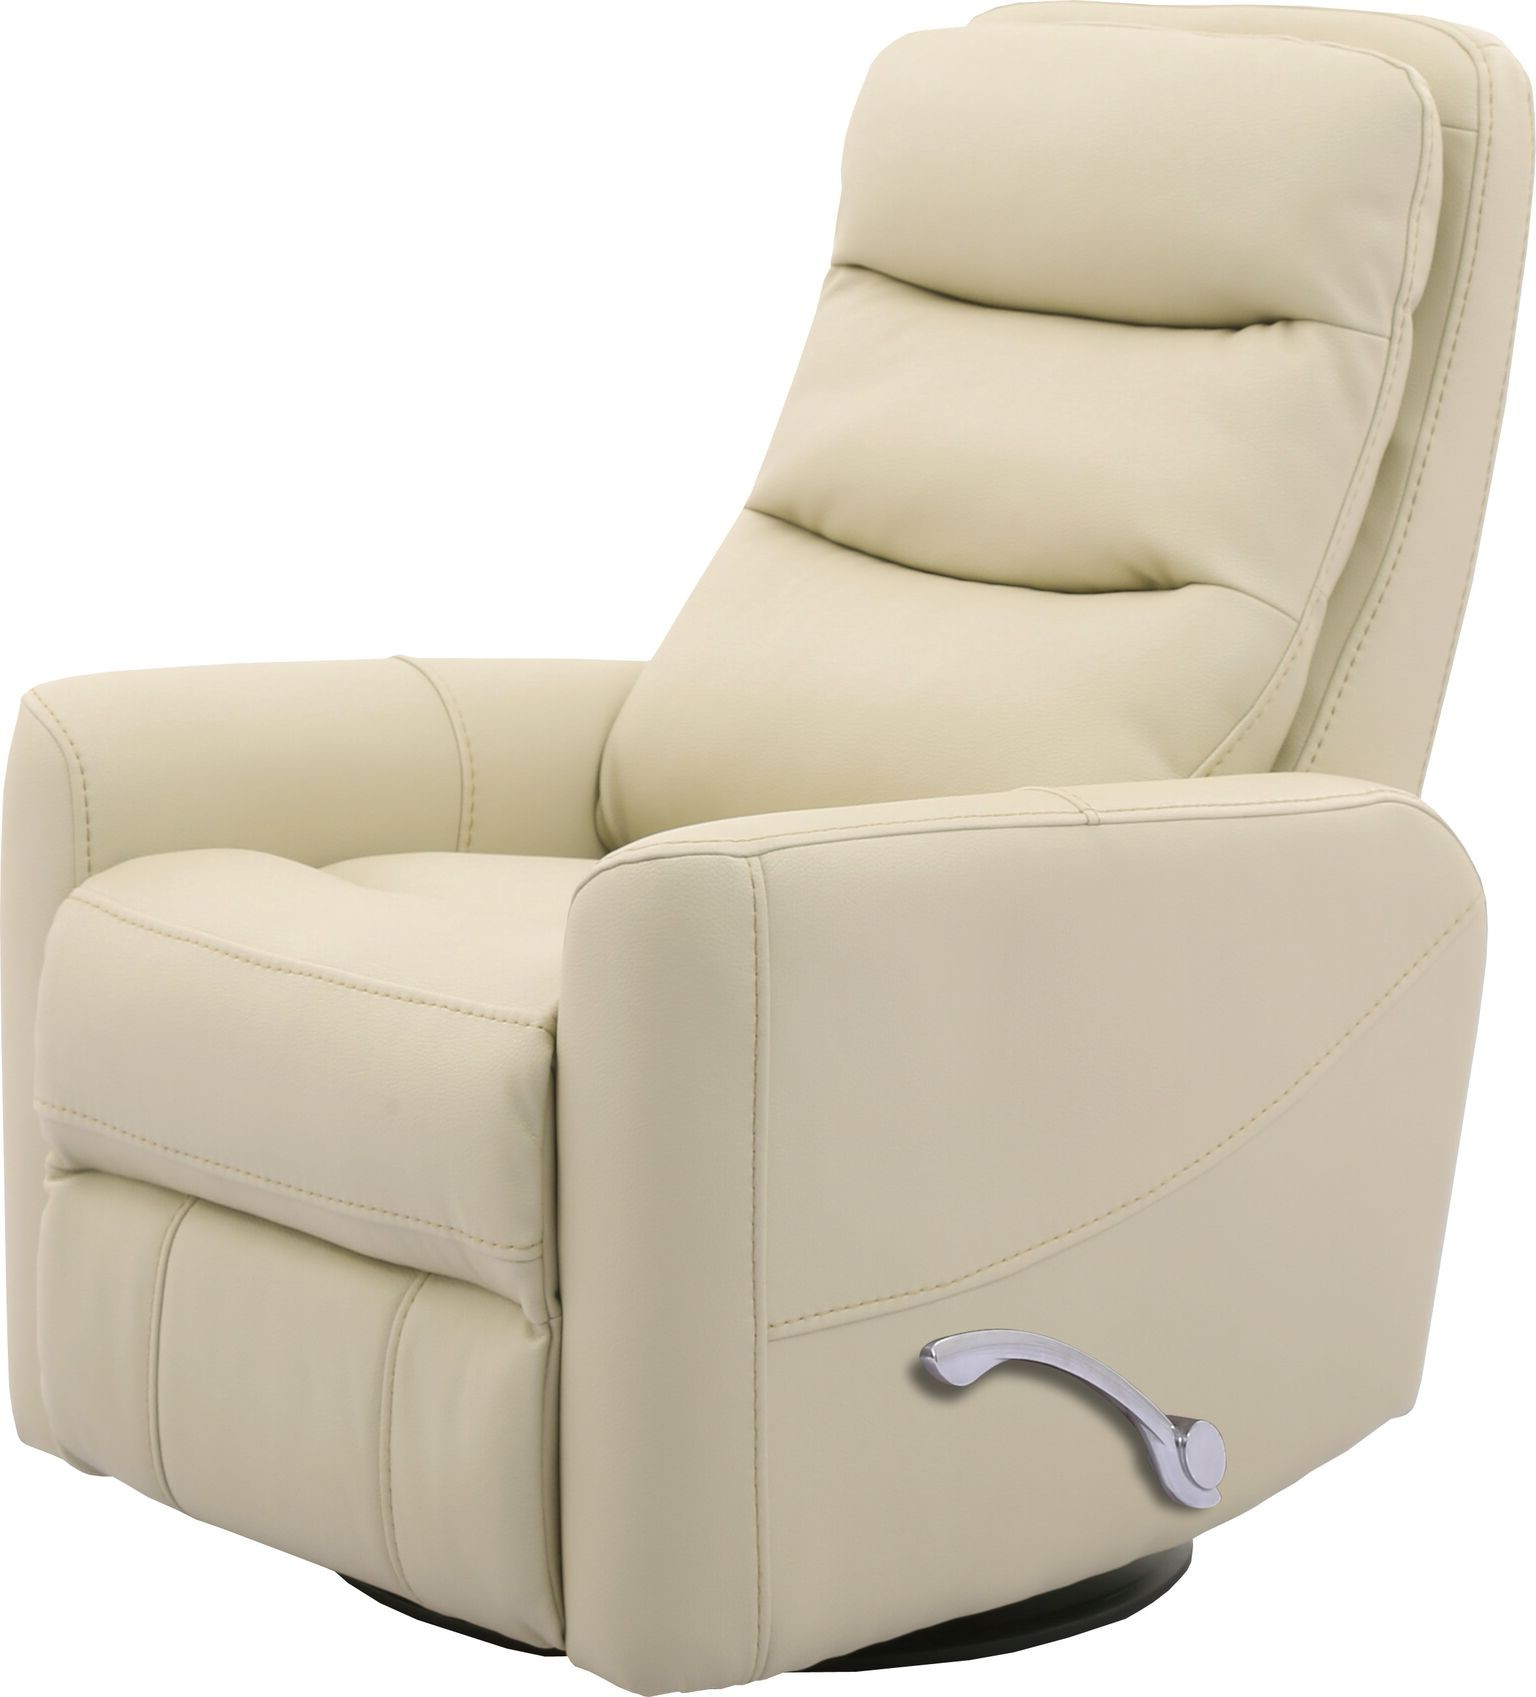 Hercules Grey Swivel Glider Recliners For Most Current Hercules Oyster Swivel Glider Recliner With Articulating Headrest (View 2 of 20)